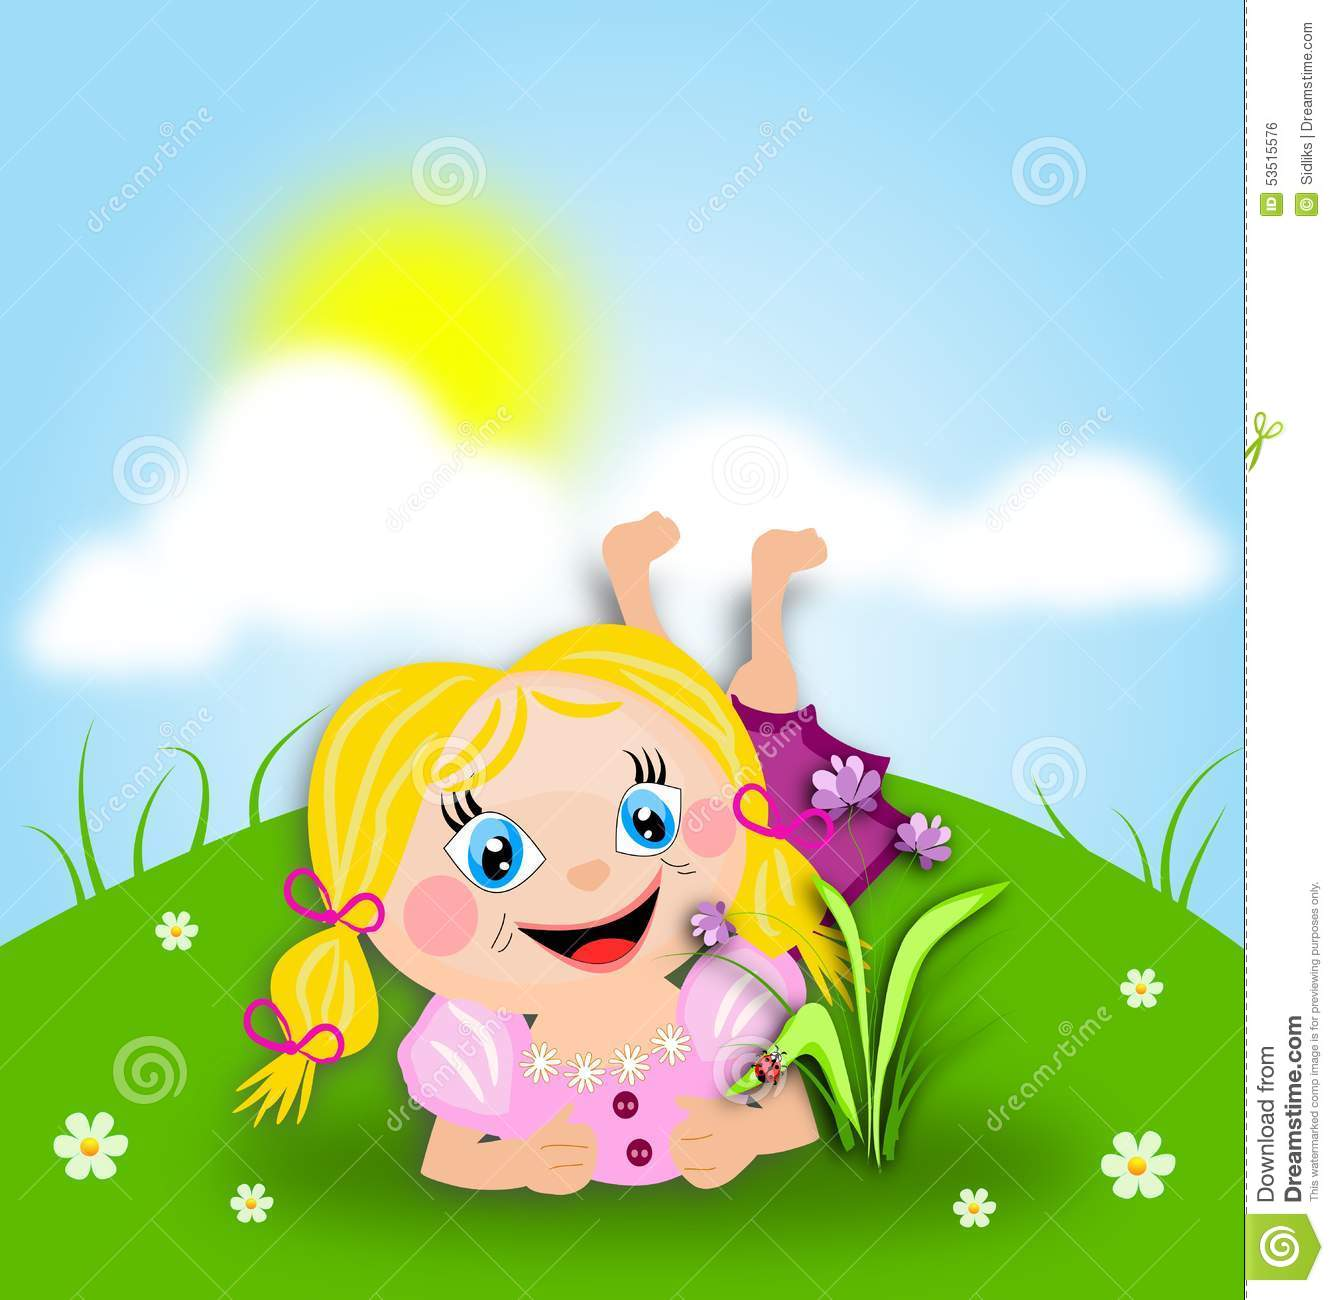 Lying Down On Grass Clipart.